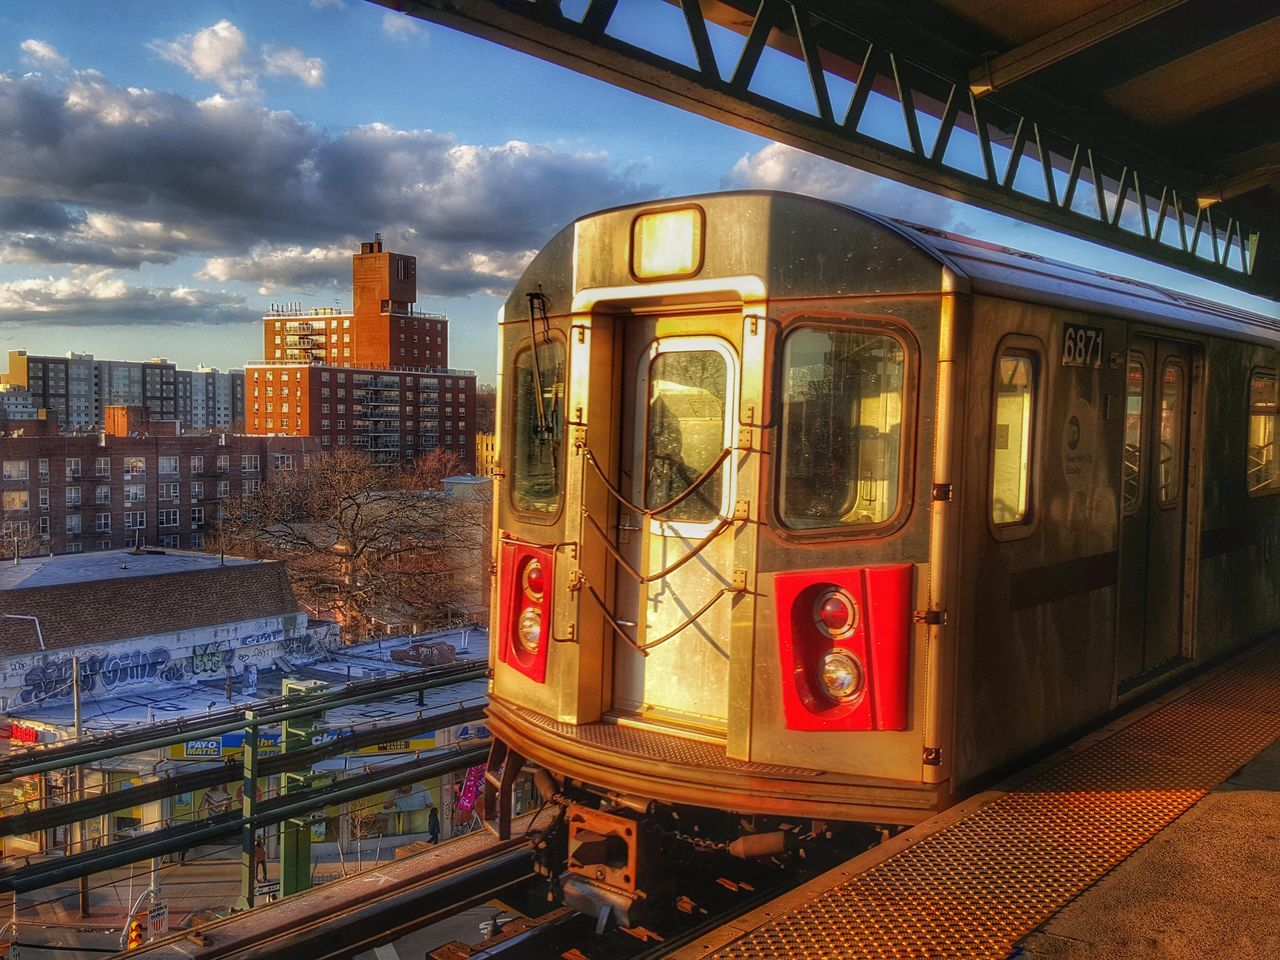 Hanging Out Taking Photos Check This Out Hello World Relaxing Enjoying Life Sky Photo Photography Bronx Sky And Clouds Bronx, New York Sunrise_sunsets_aroundworld Train Train Station Trainspotting Trains & Railroad Trains_worldwide